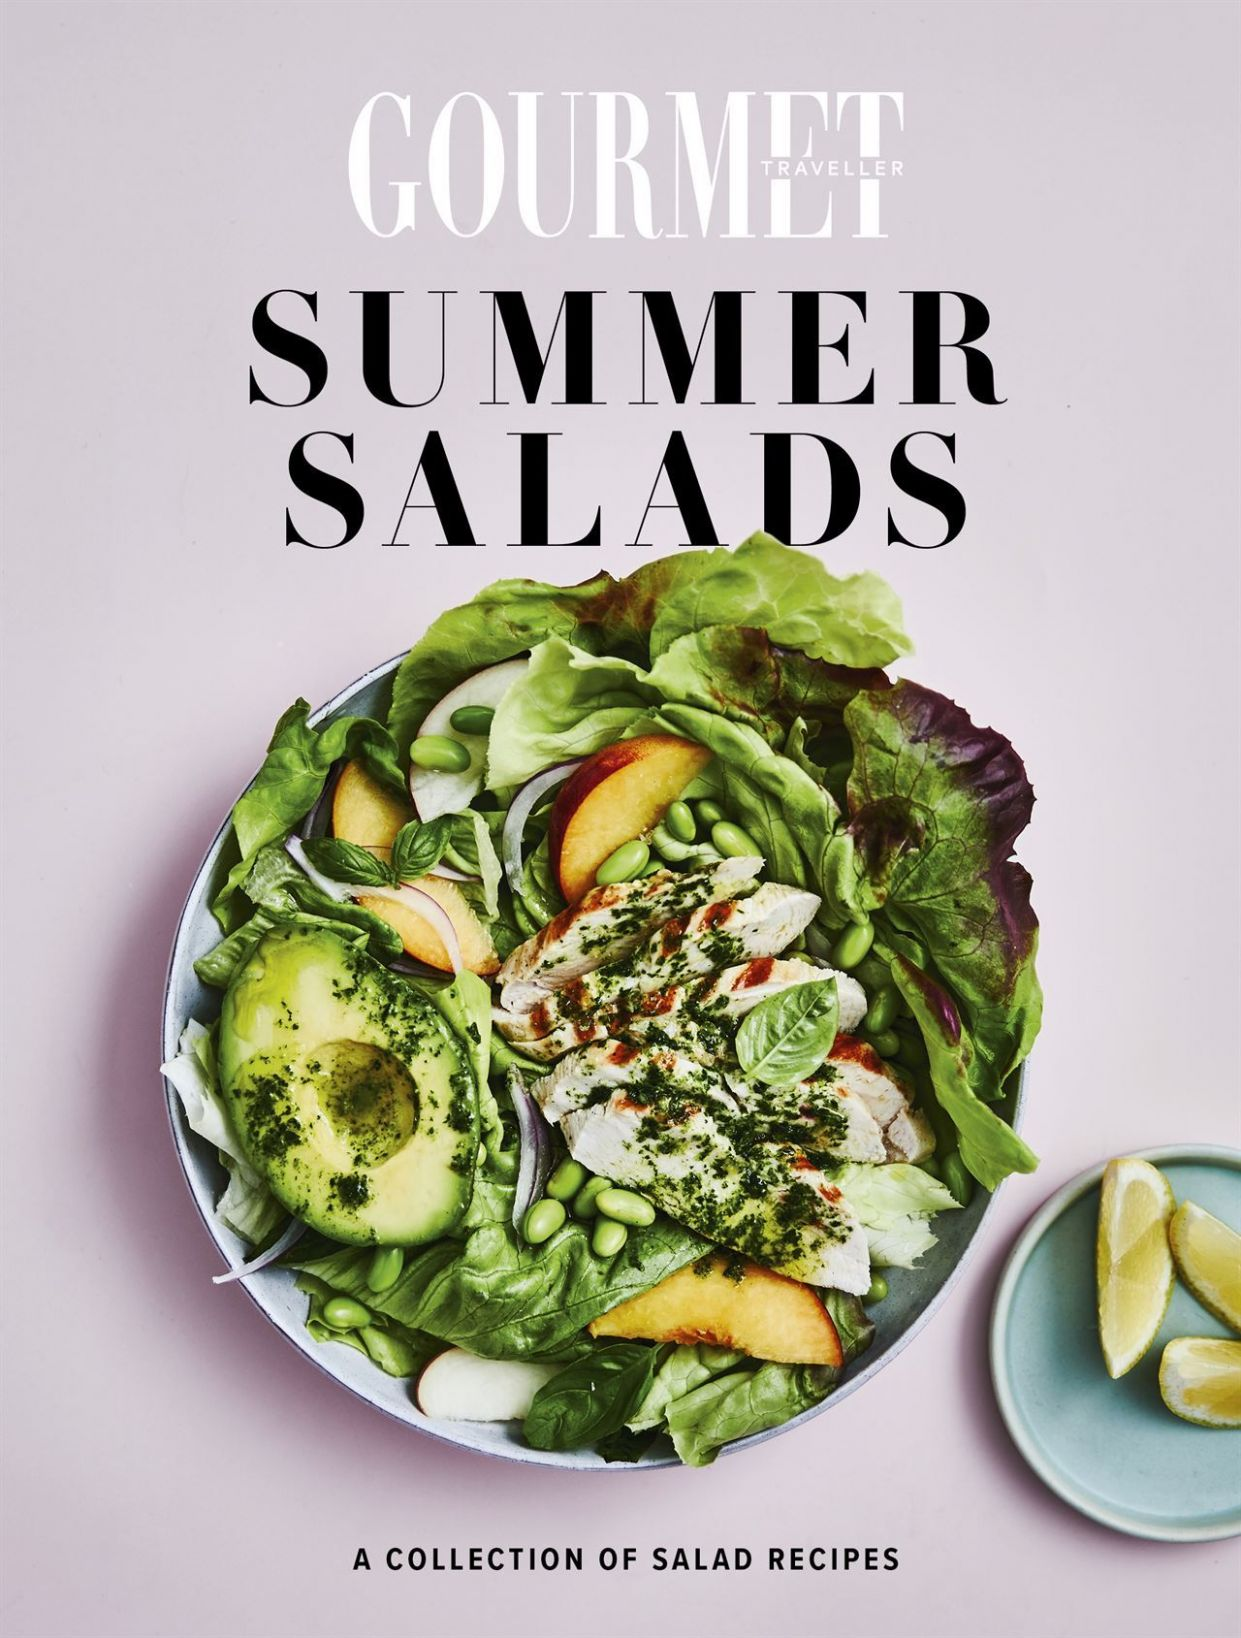 Australian Gourmet Traveller Summer Salads | Magshop - Salad Recipes Gourmet Traveller